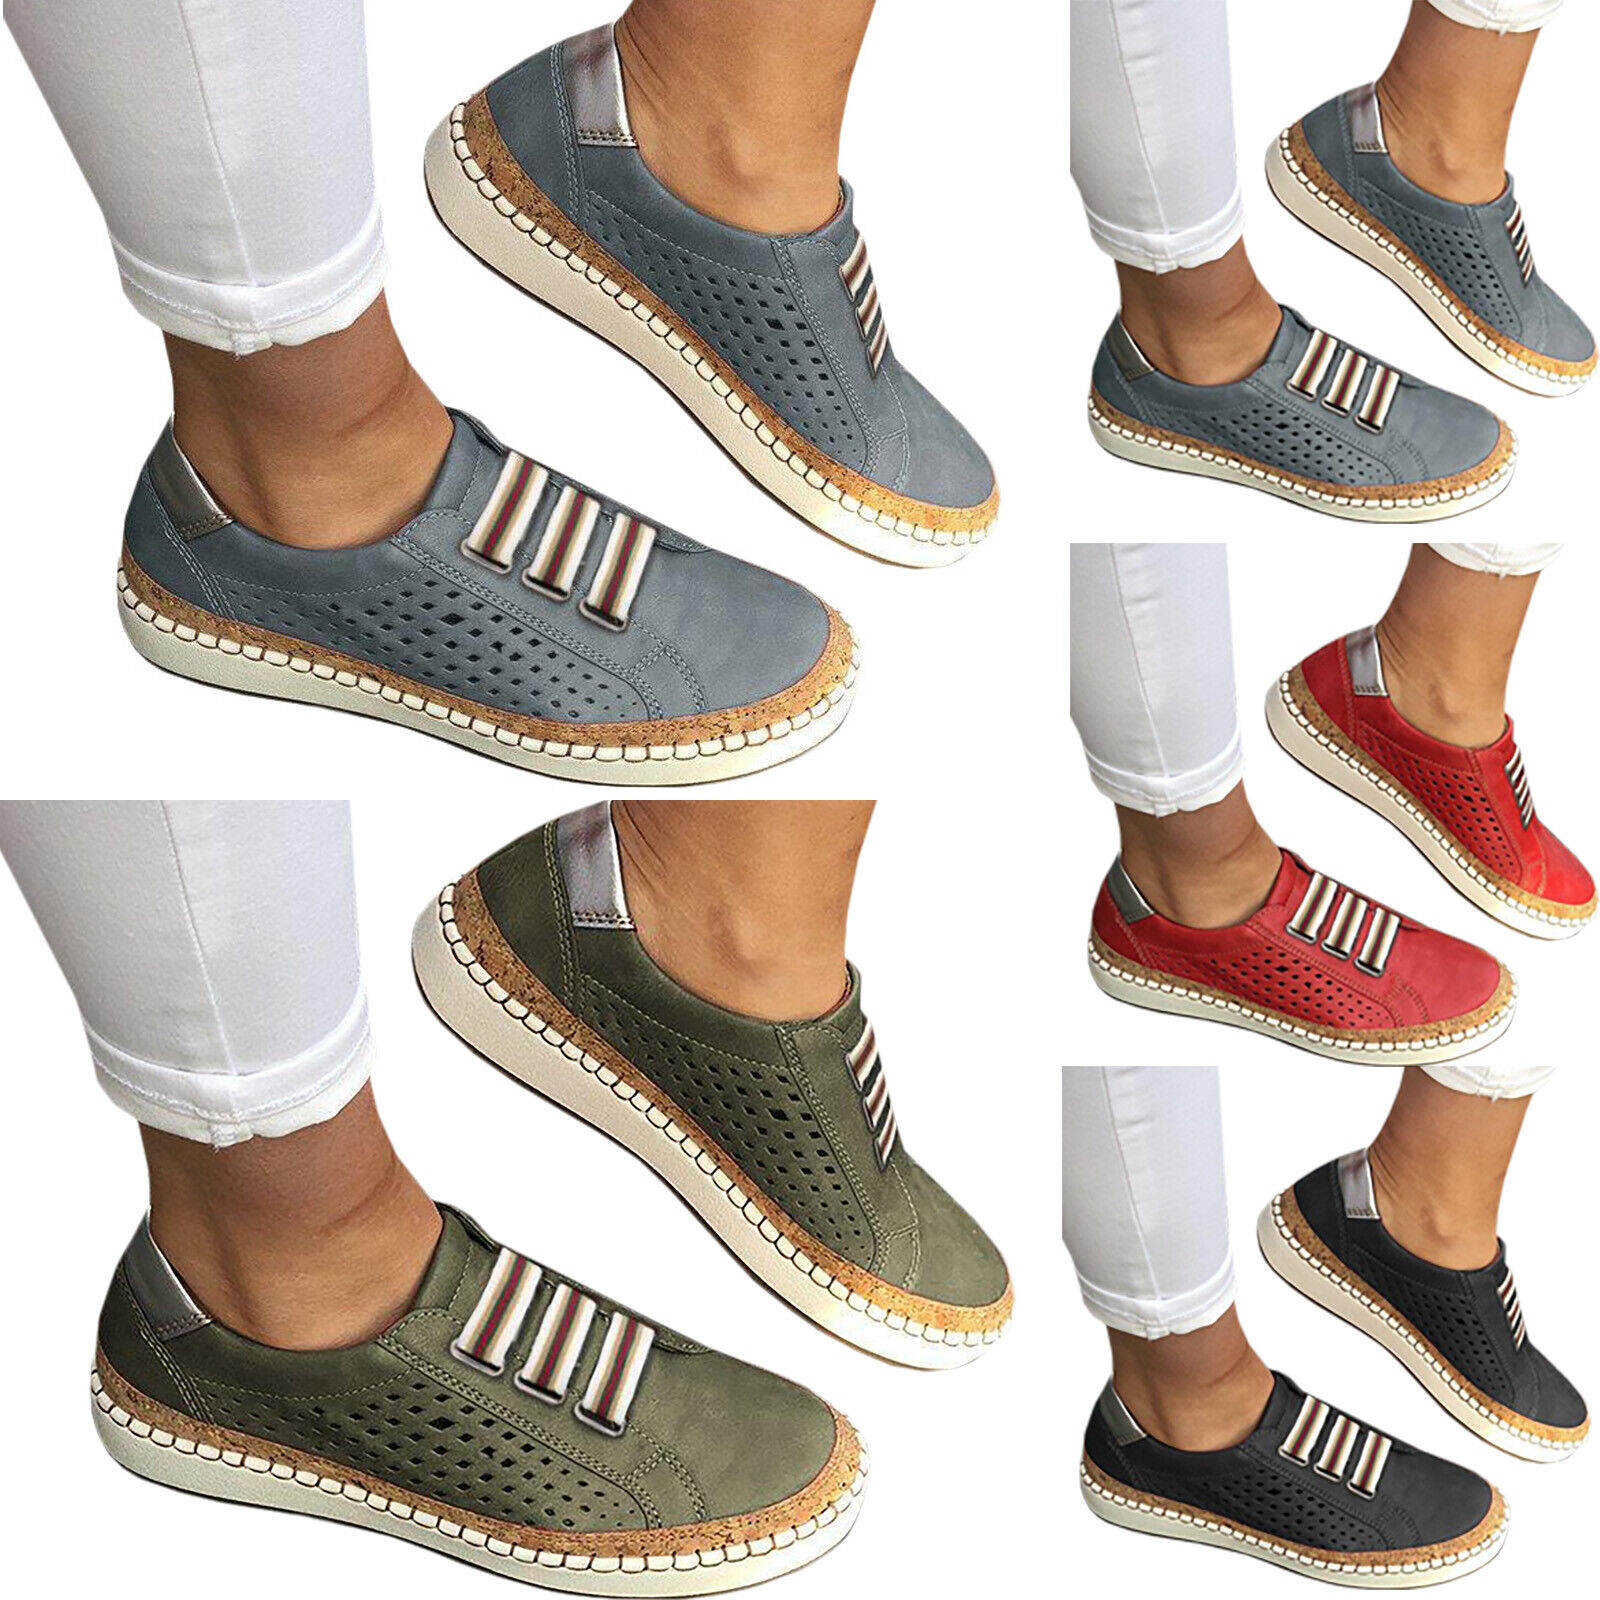 Women Slide Hollow-Out Flats Round Toe Leisure Breathable Casual Sneakers Shoes 1